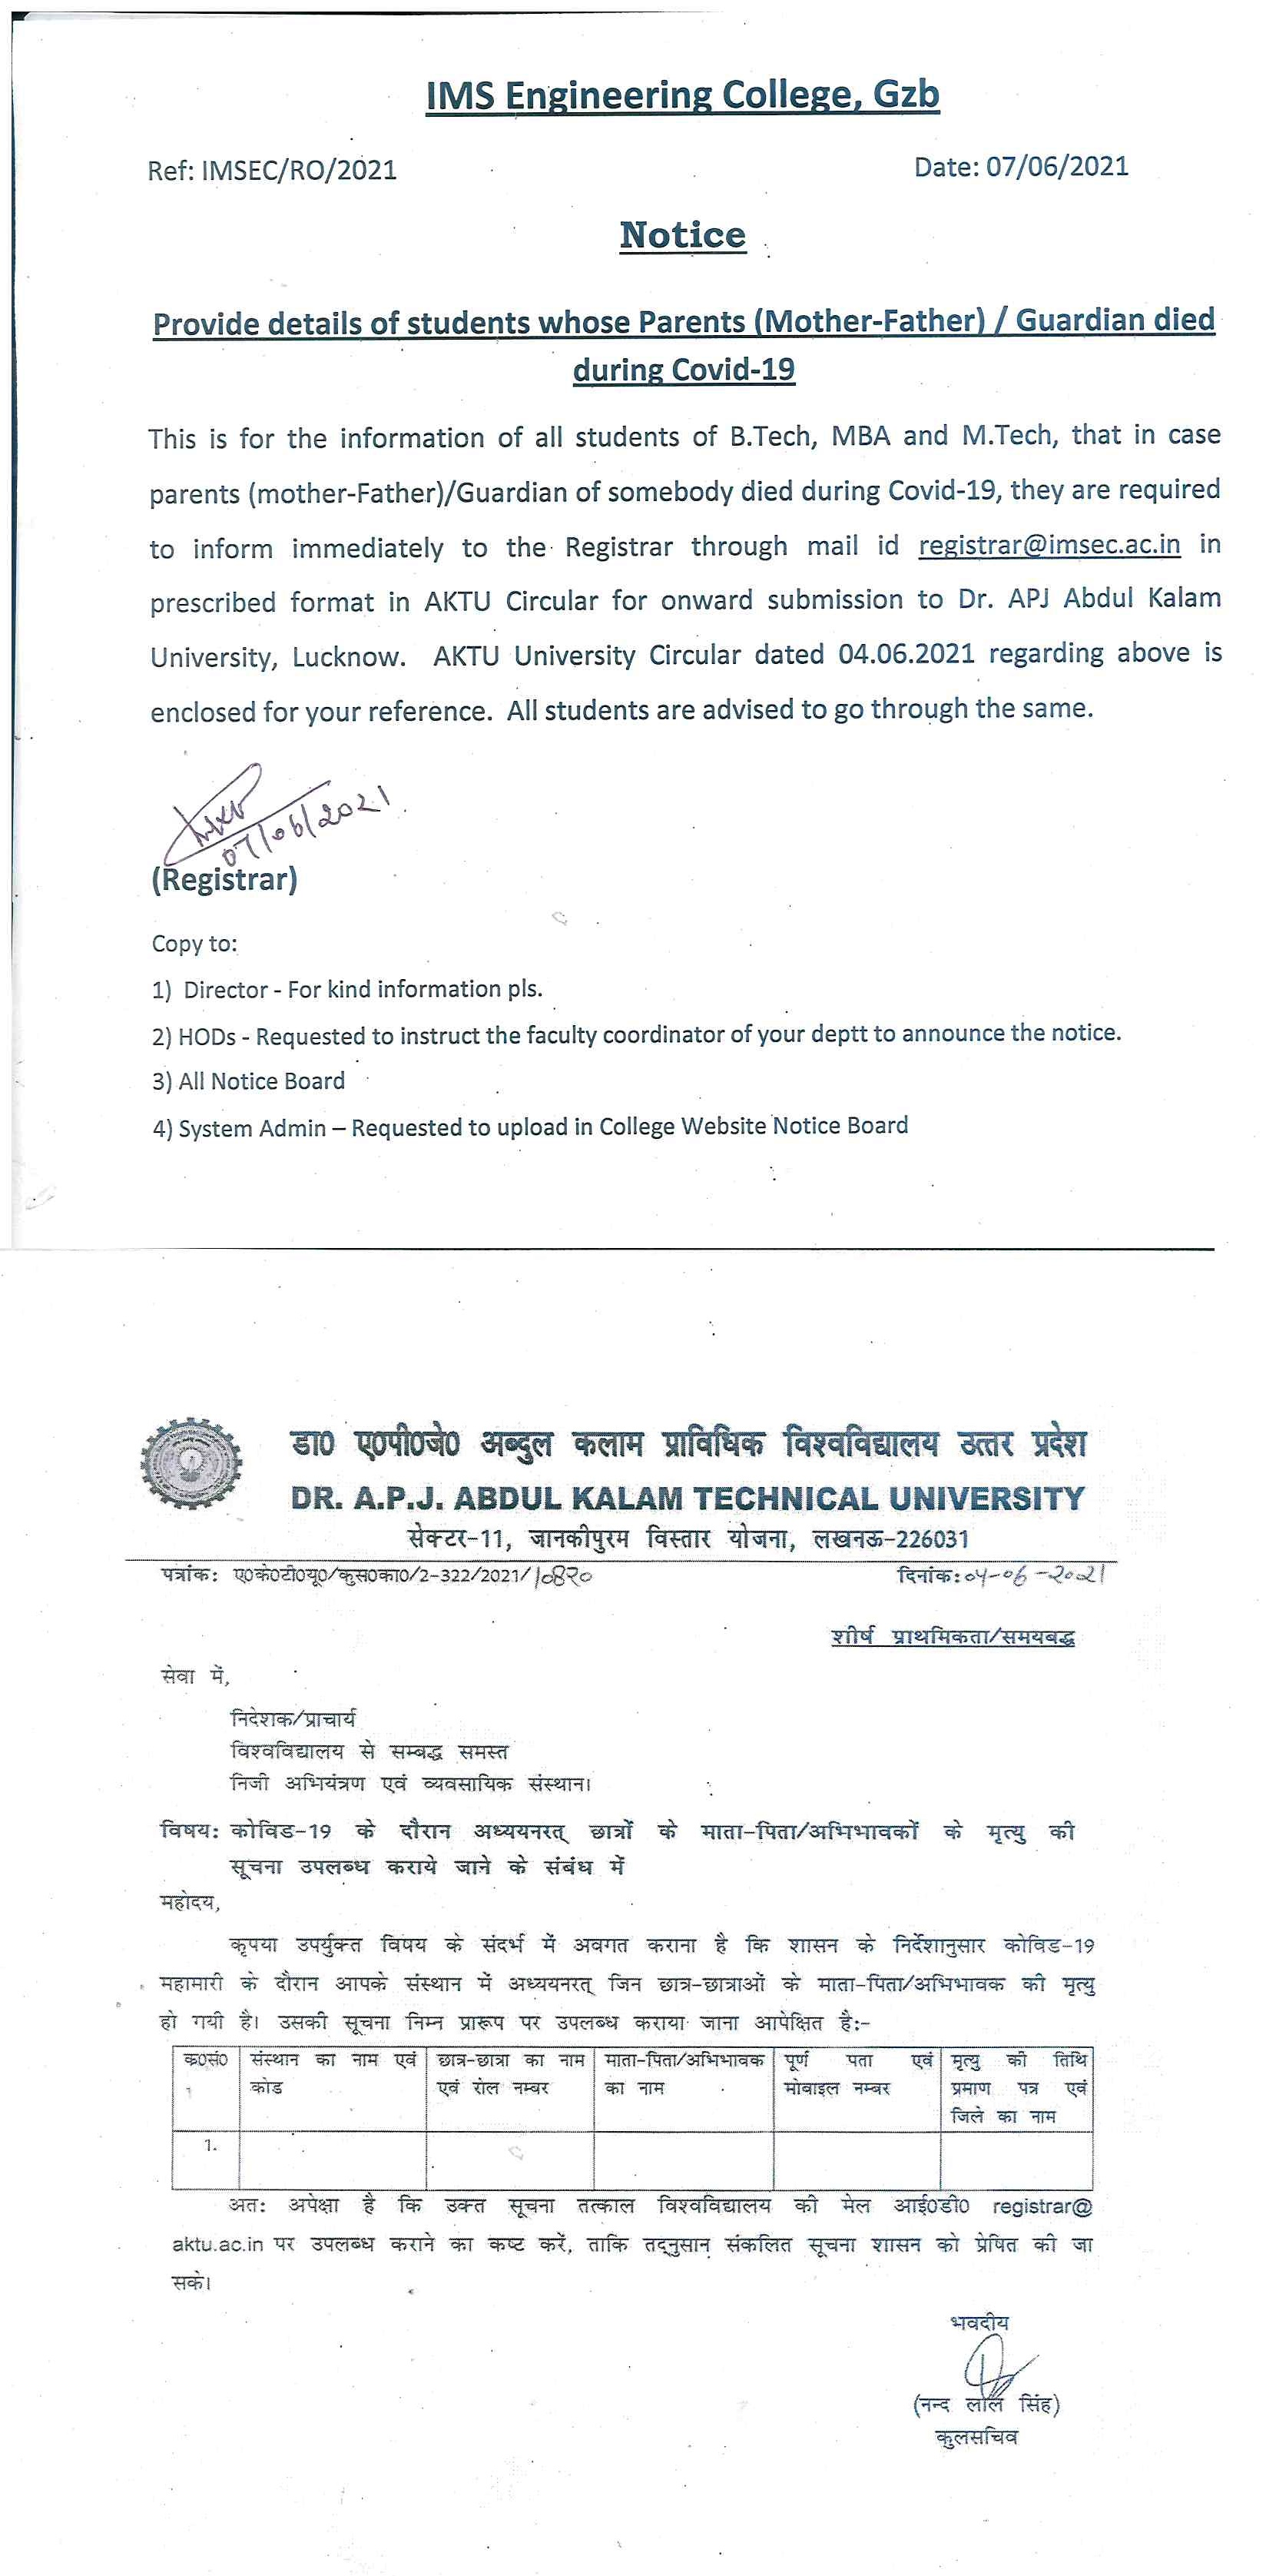 Notice - Provide details of students whose Parents (Mother-Father) / Guardian died during Covid-19